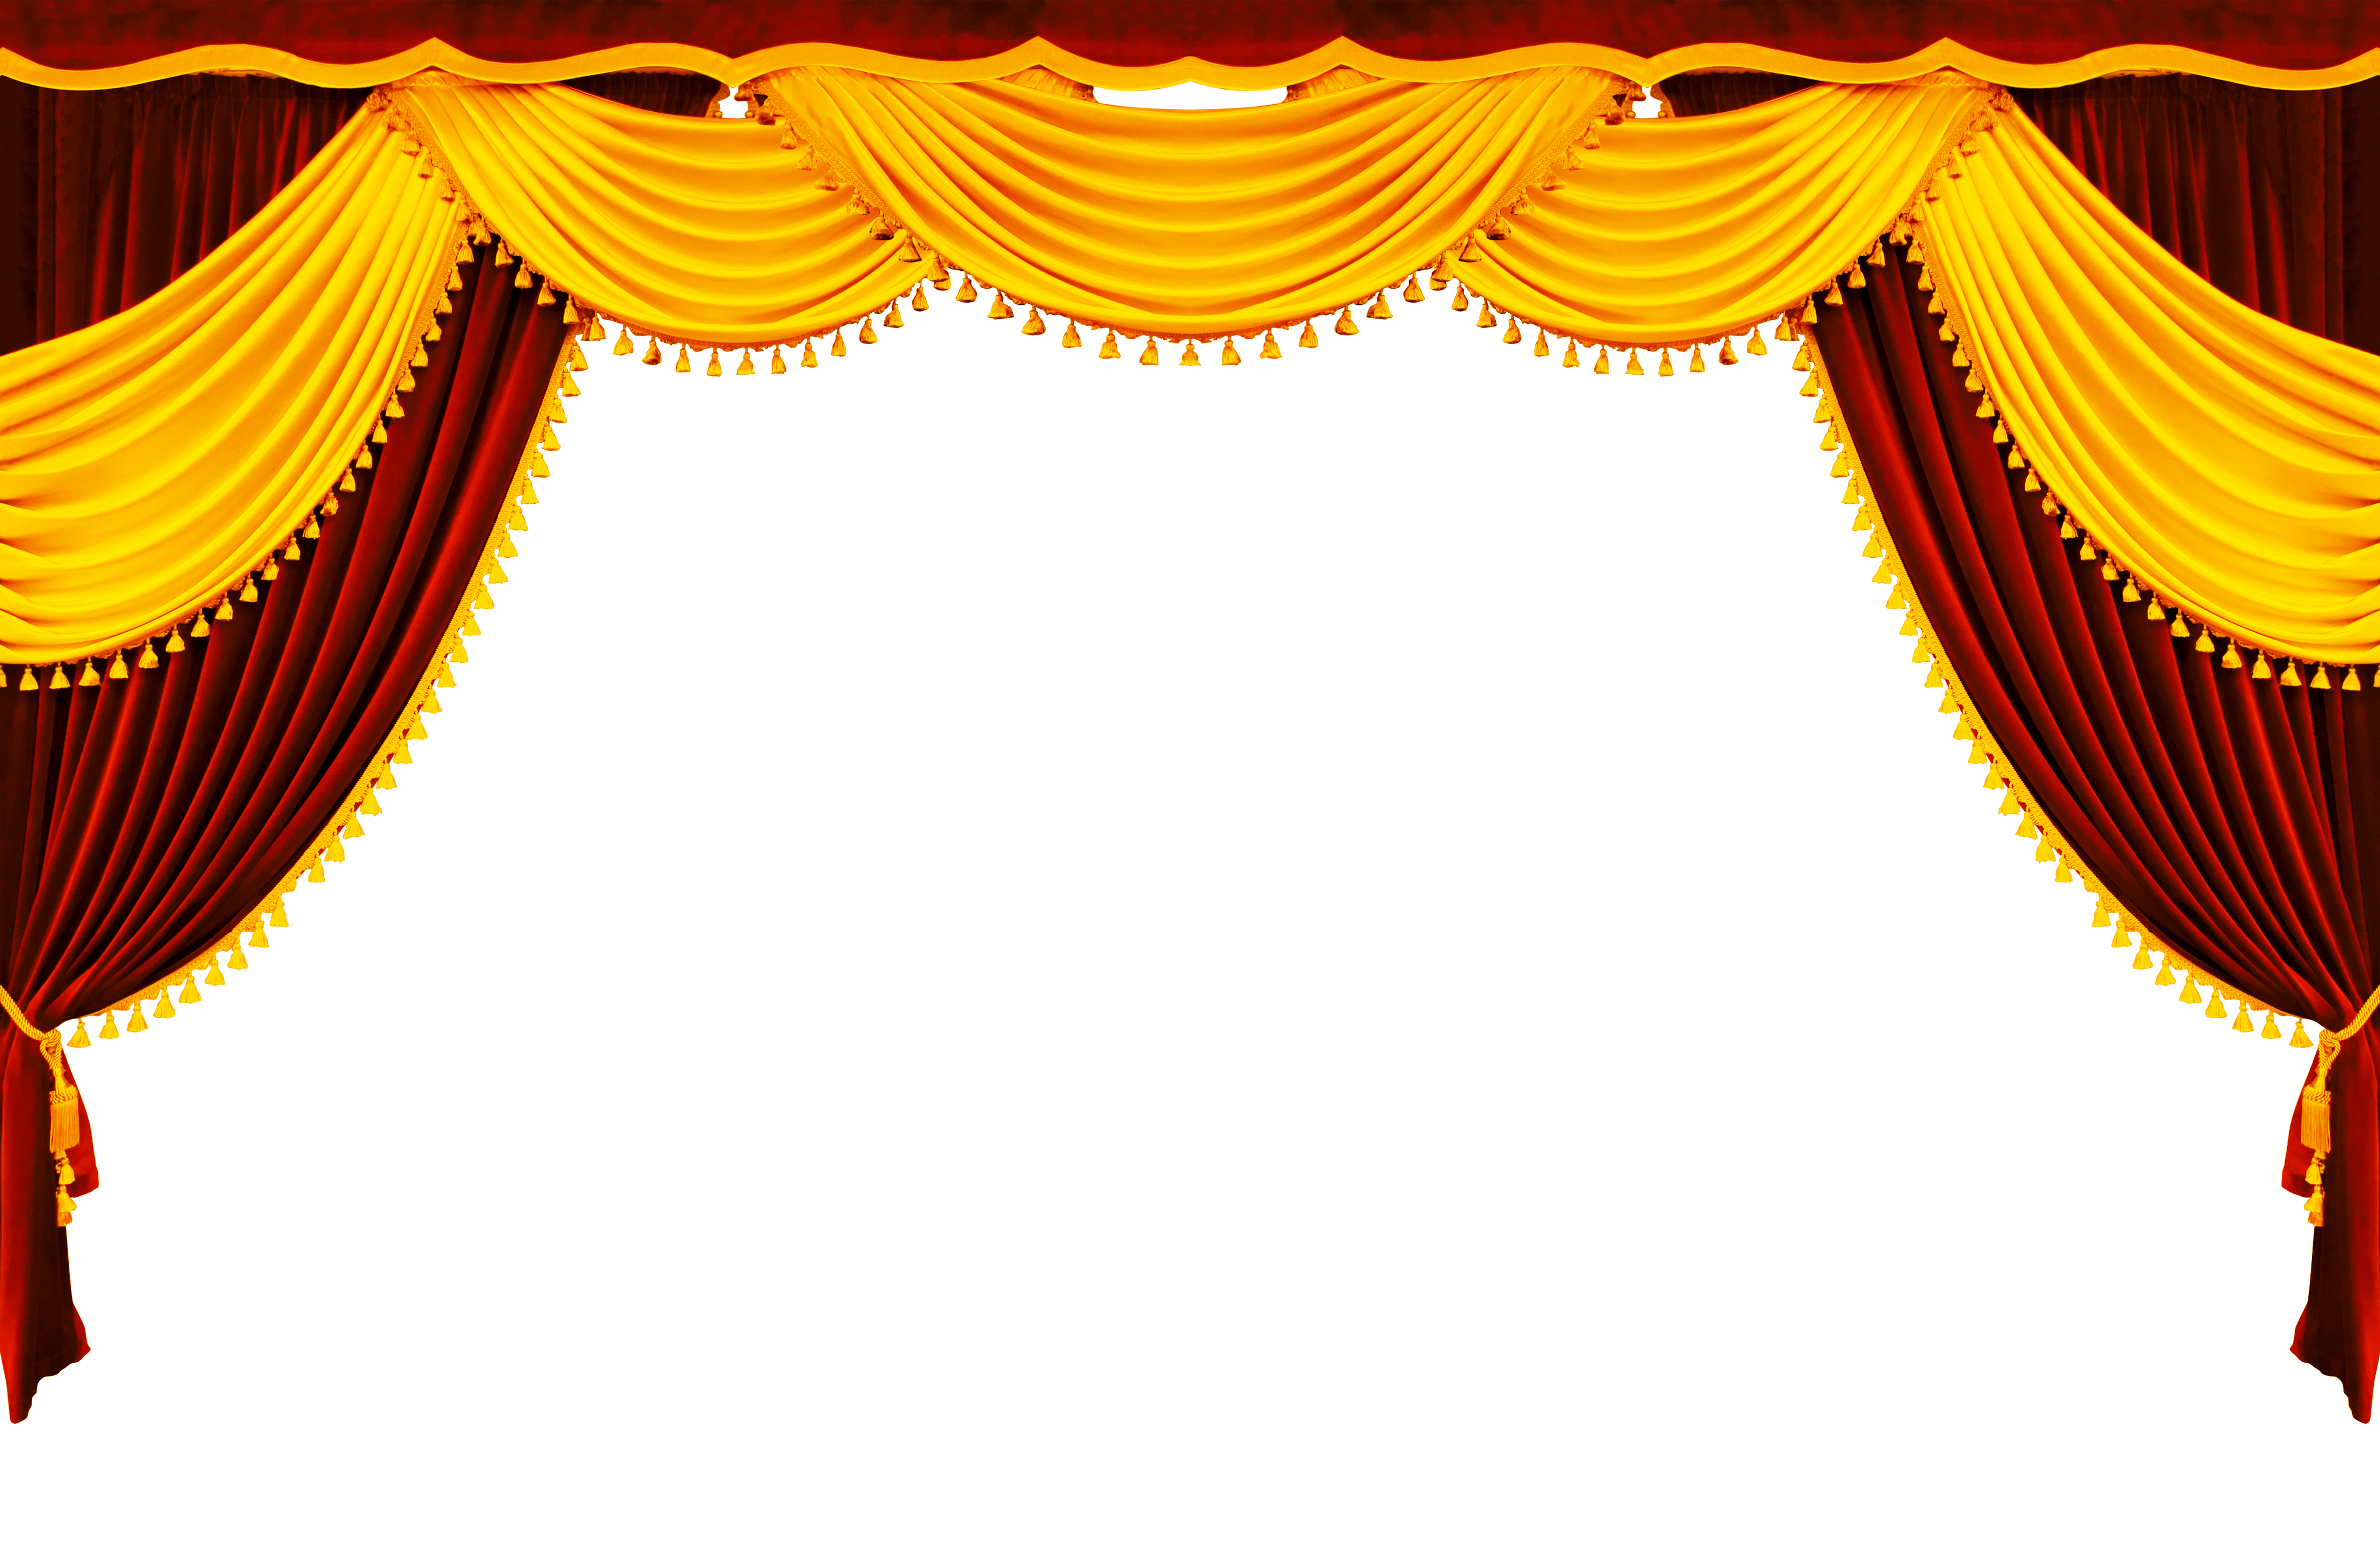 Theater drapes and stage. Theatre curtain png jpg royalty free